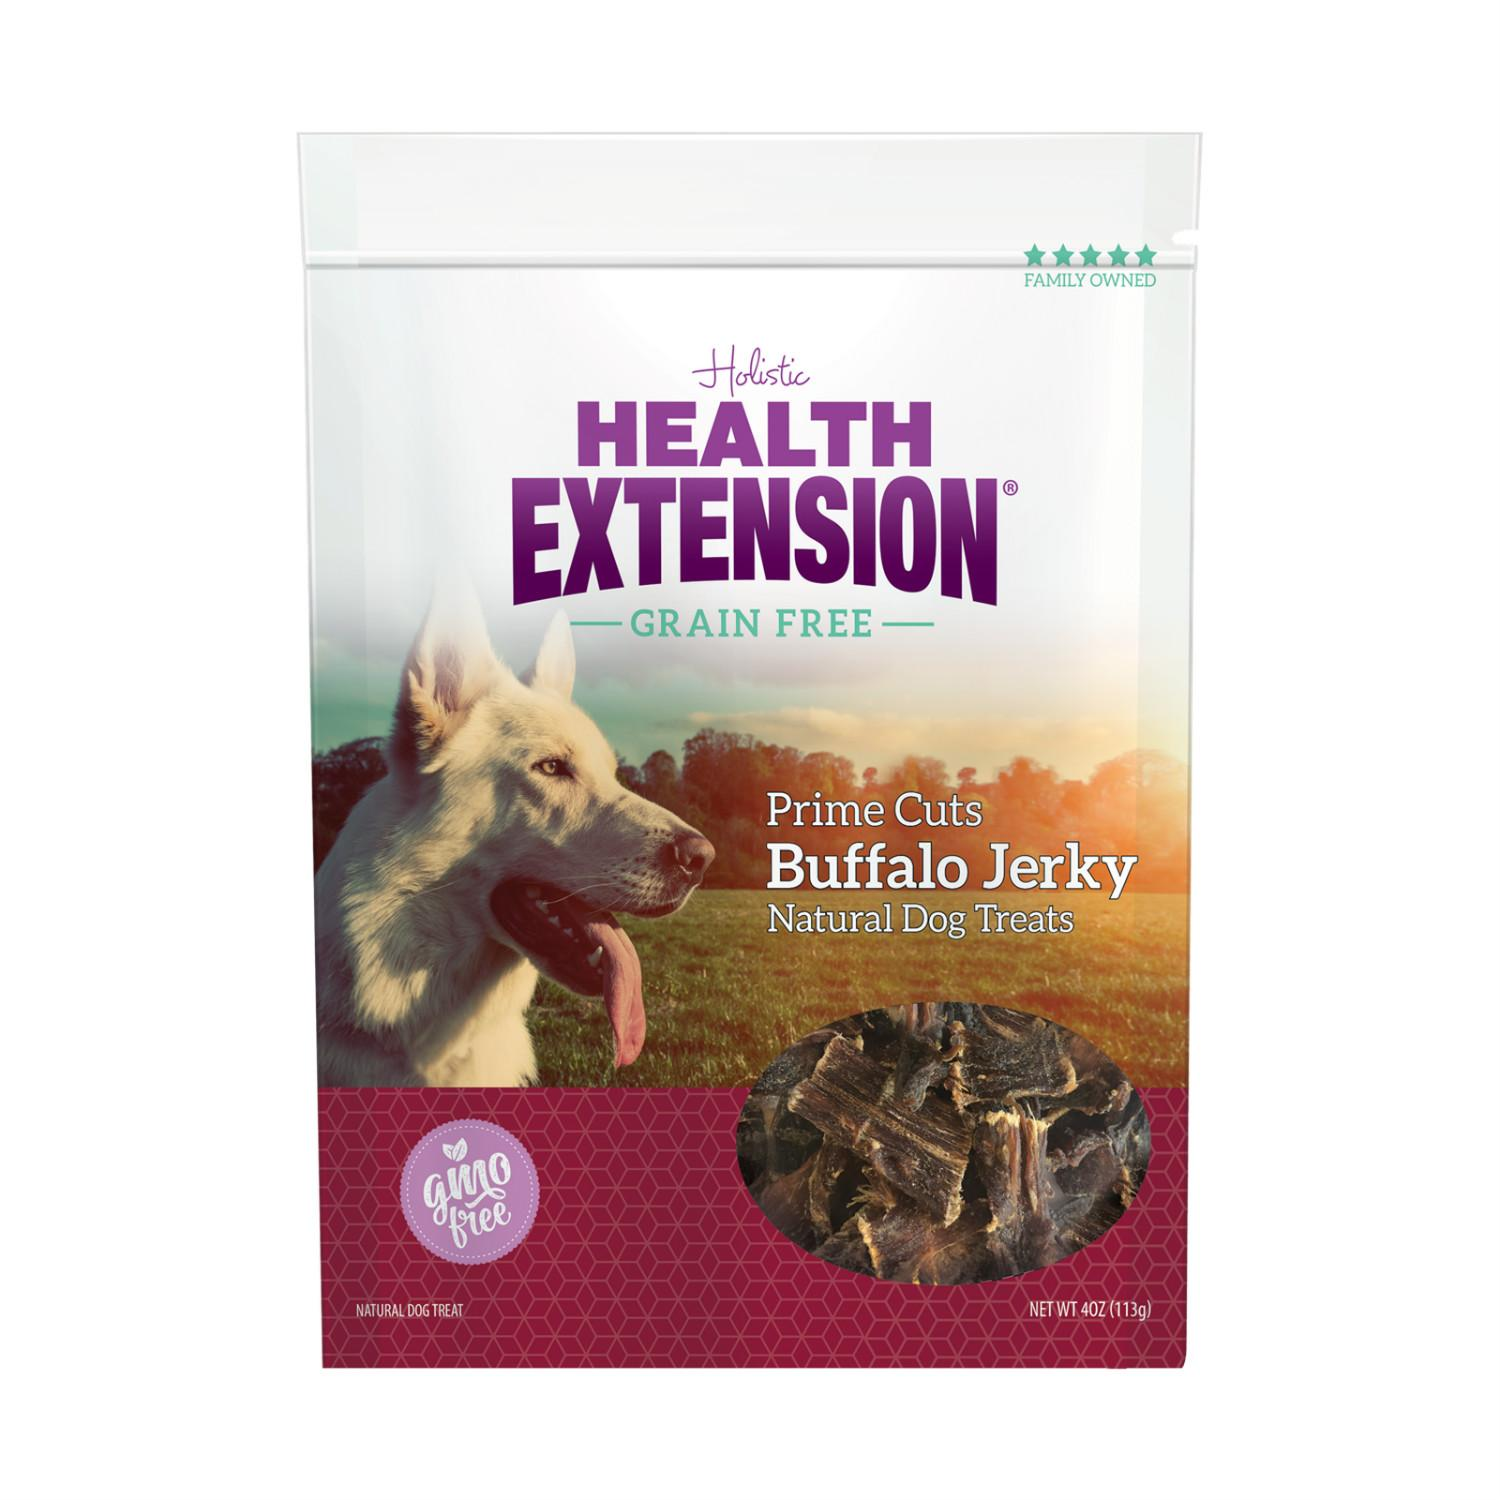 Health Extension Grain Free Natural Dog Treats - Prime Cuts Buffalo Jerky